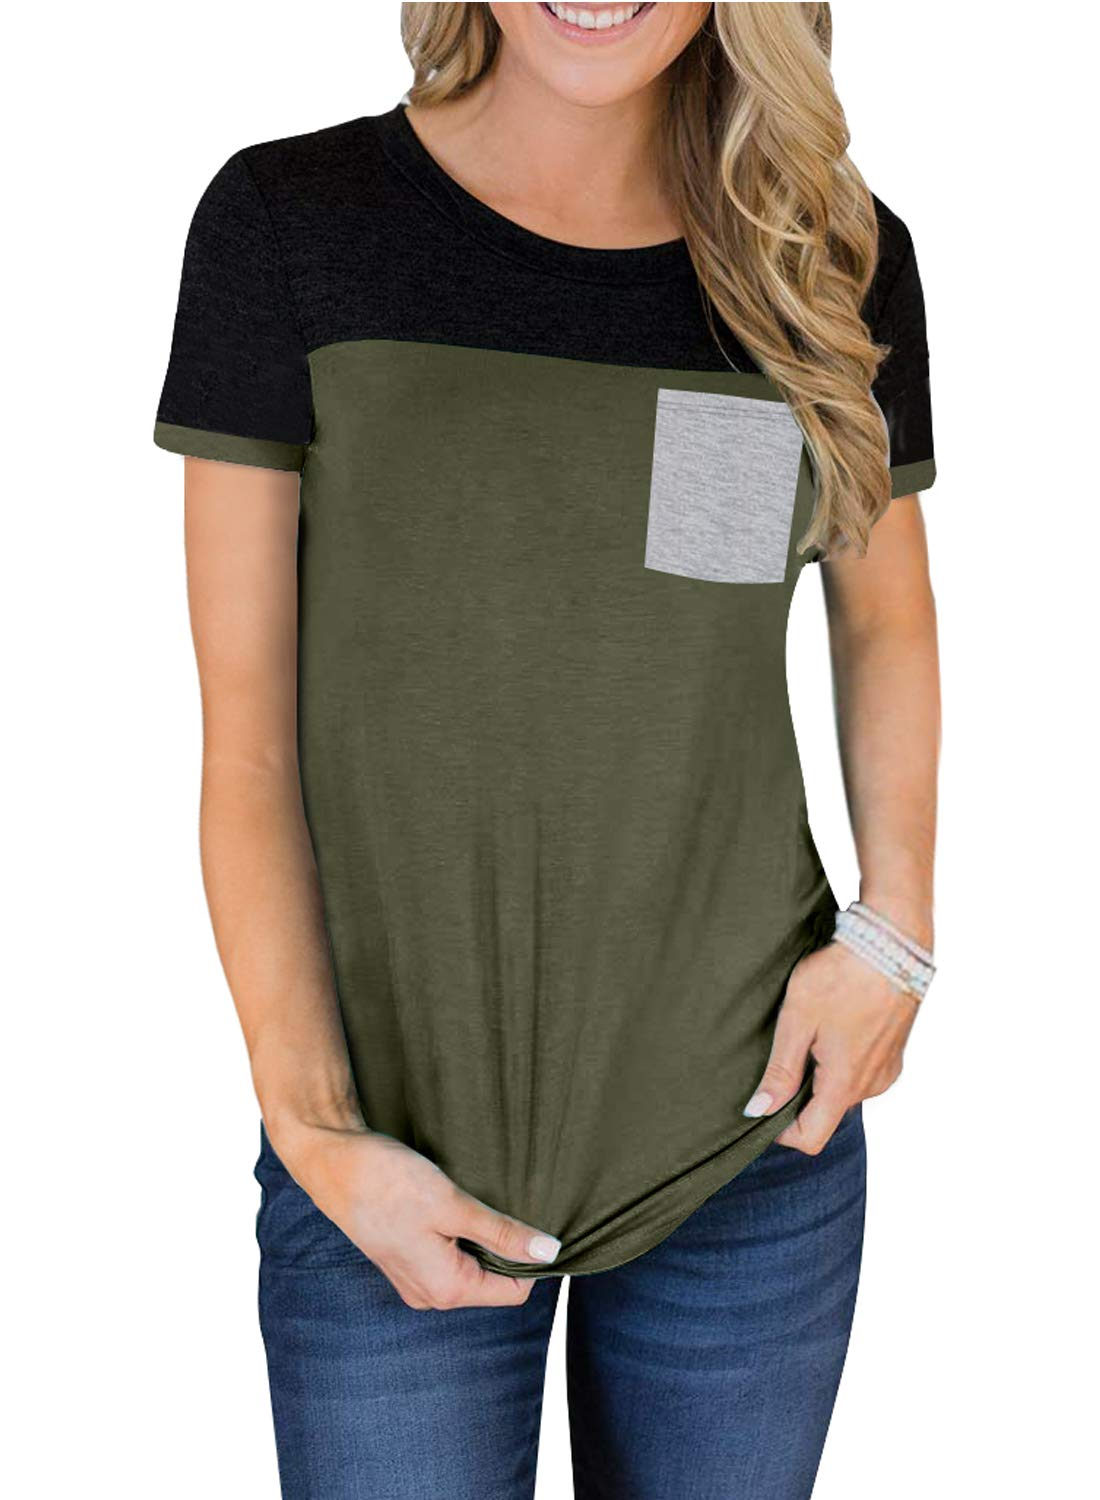 Aleumdr Women's Short Sleeve Crew Neck T Shirts Color Block Tops with Pocket S-XXL